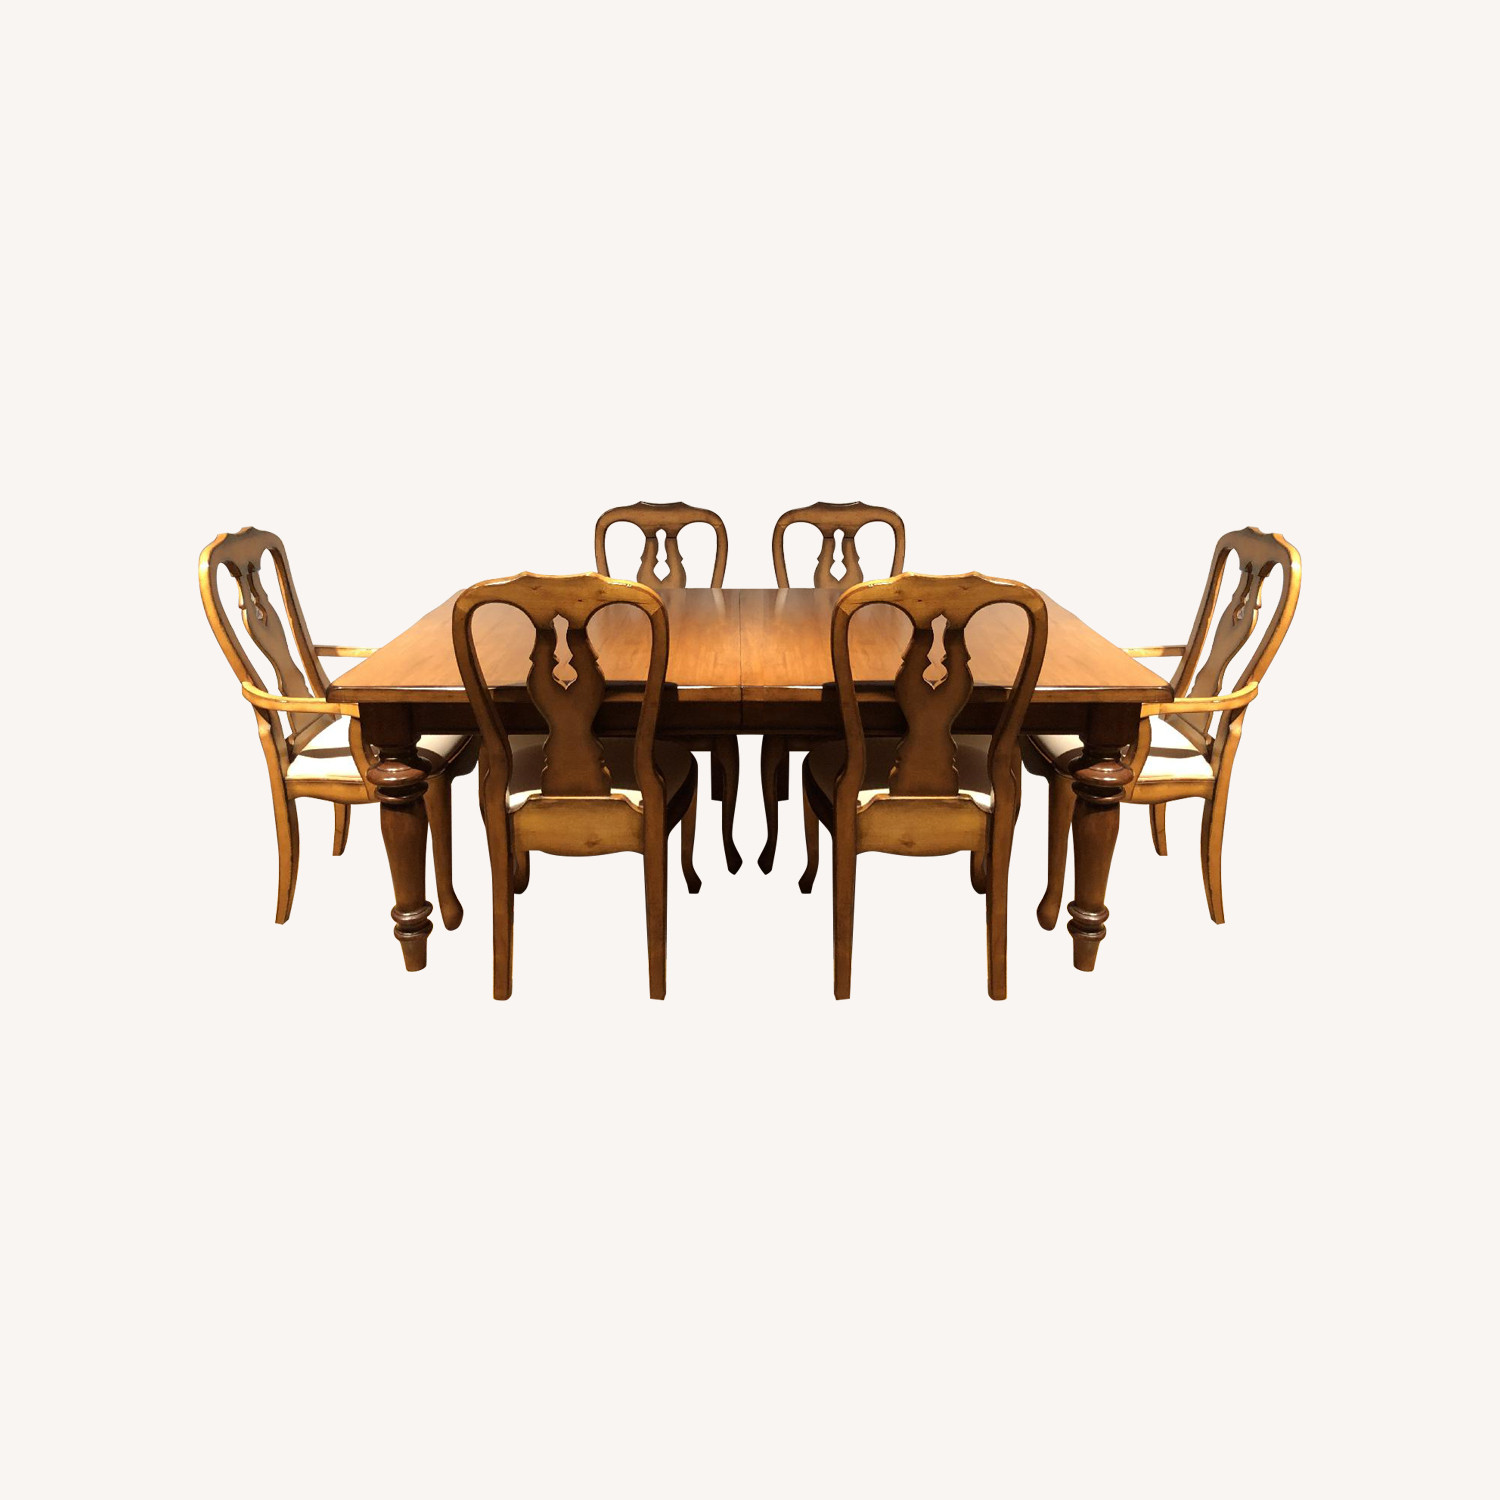 Pottery Barn Extension Dining Table w/ 6 Chairs